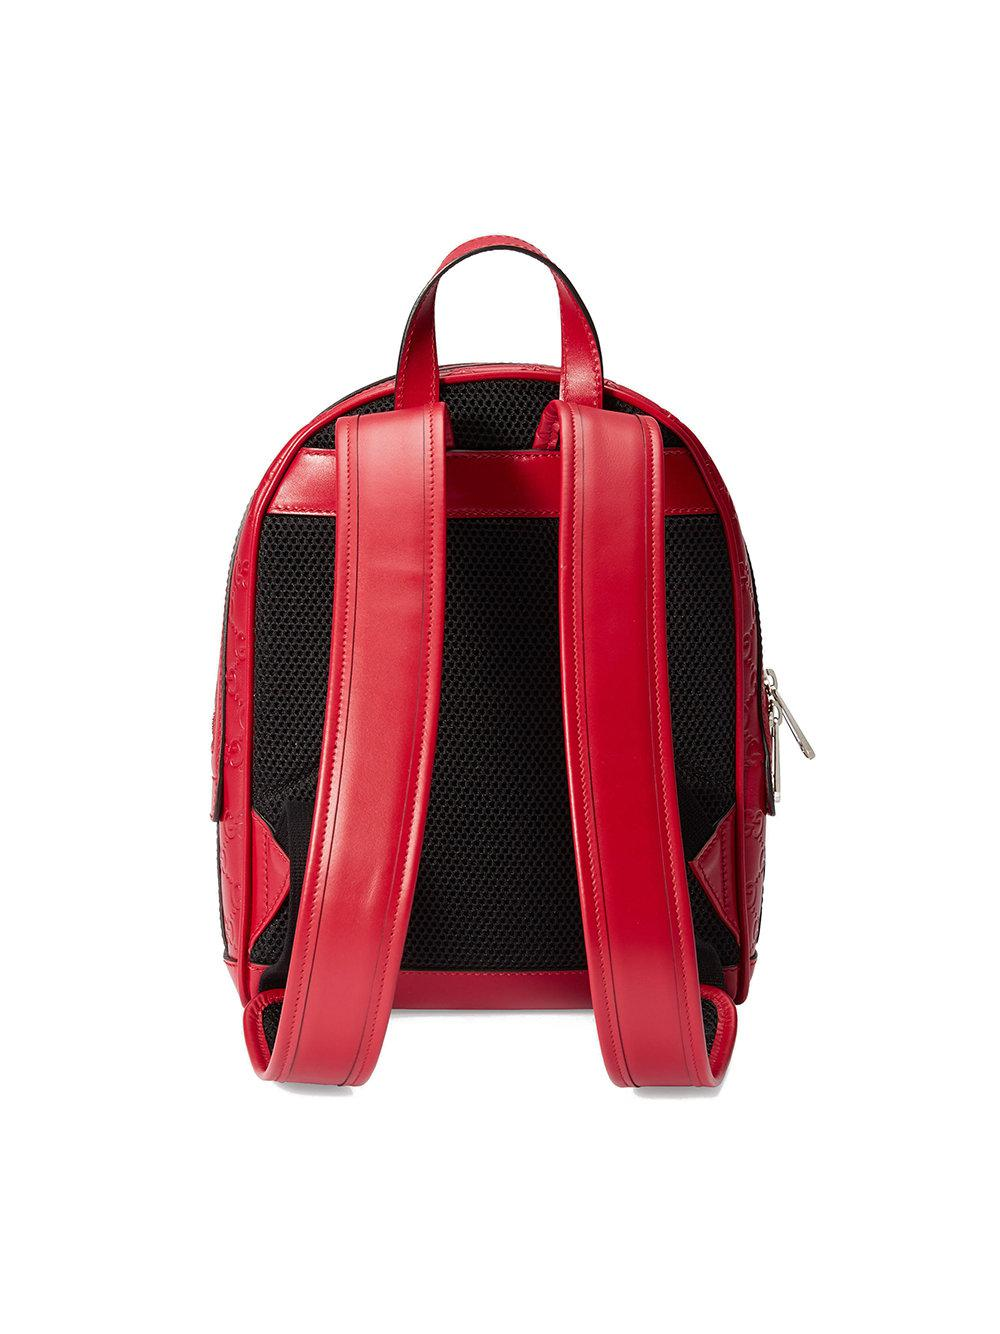 dc703c4728cb Lyst - Gucci Signature Leather Backpack in Red for Men